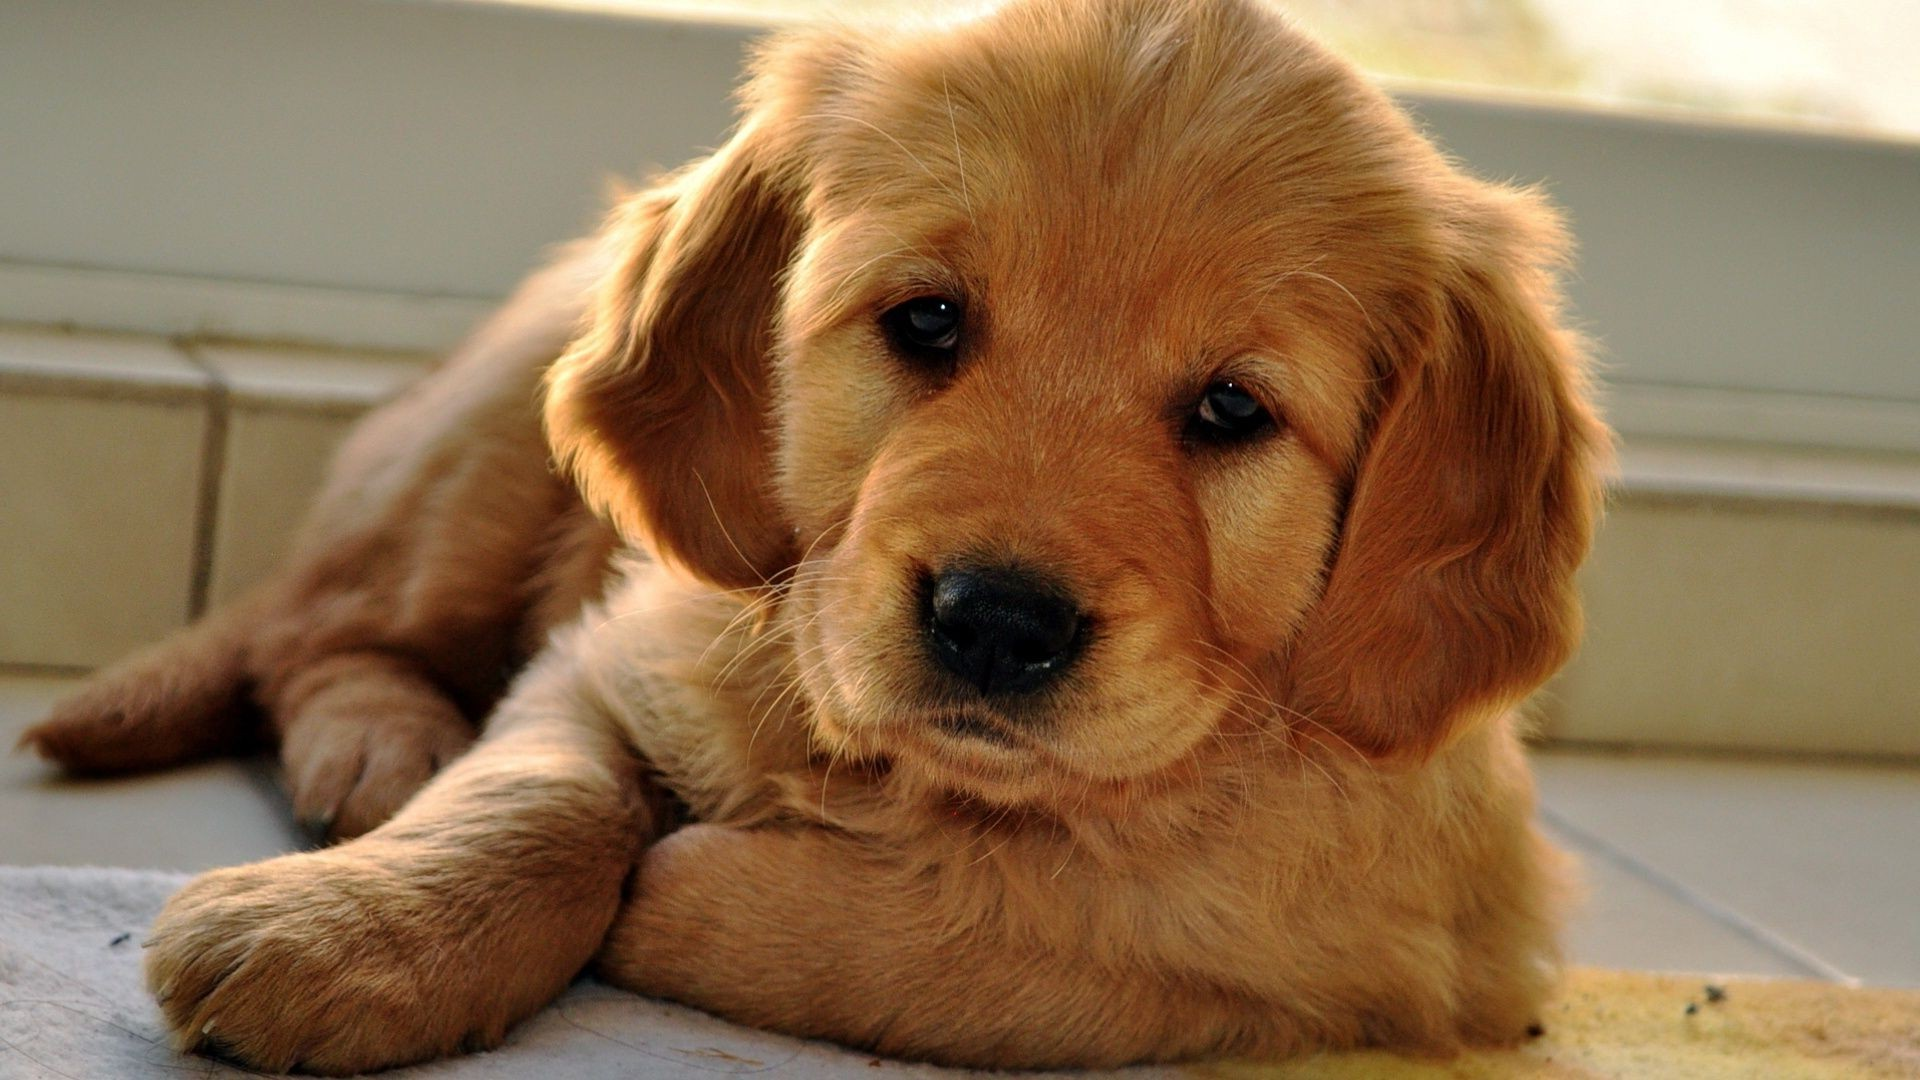 Cute Beige Puppy Dog With Sleepy Eyes Iphone Wallpapers For Free